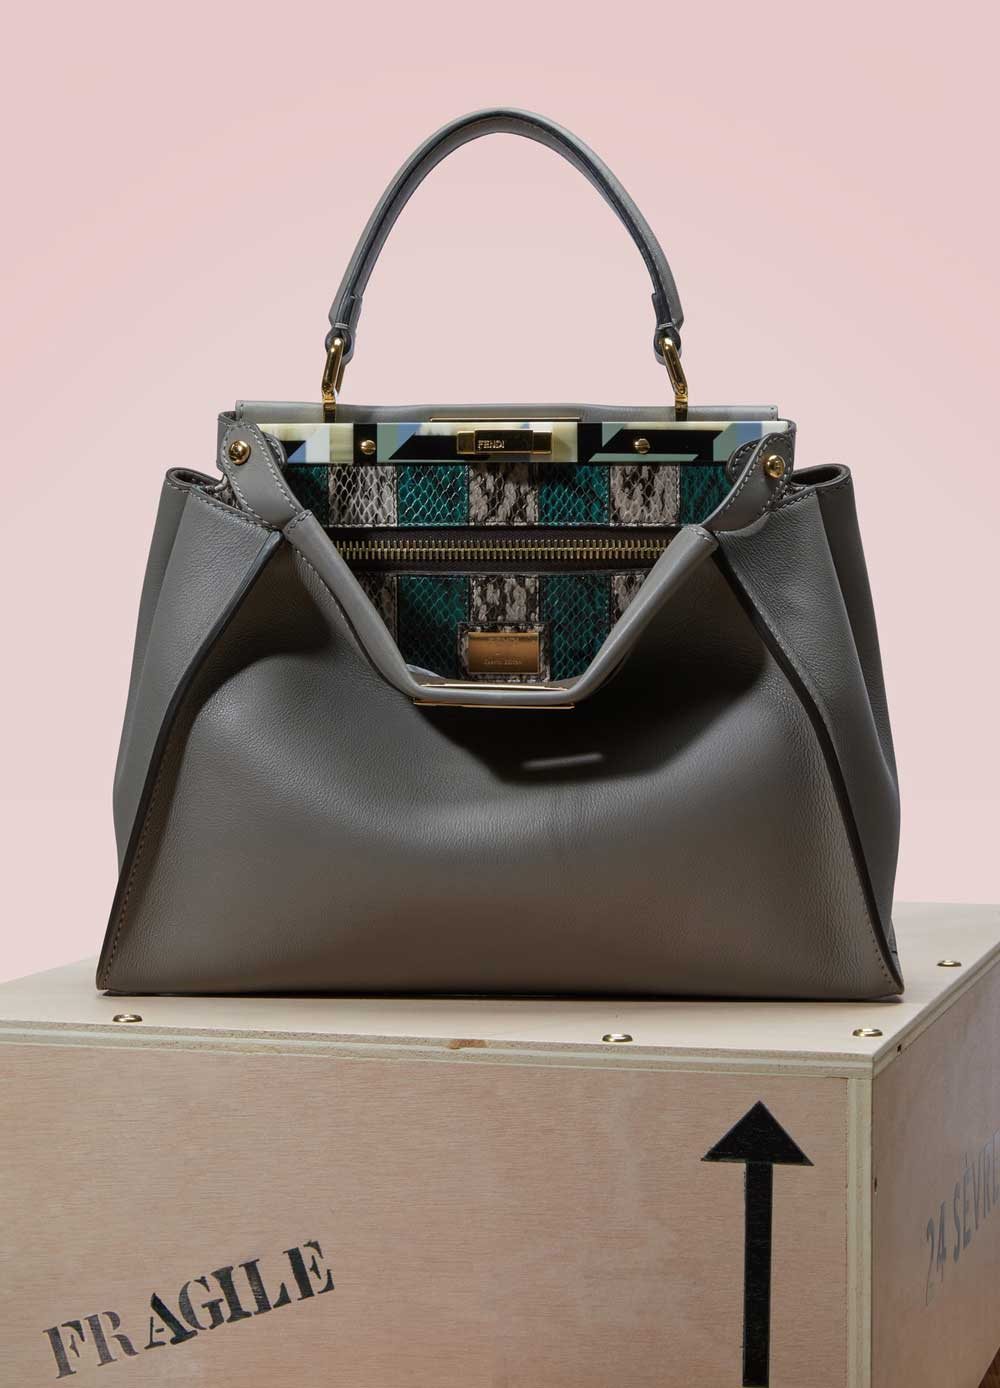 Fendi revisits the iconic Peekaboo exclusively for 24 Sèvres and Le Bon Marché.